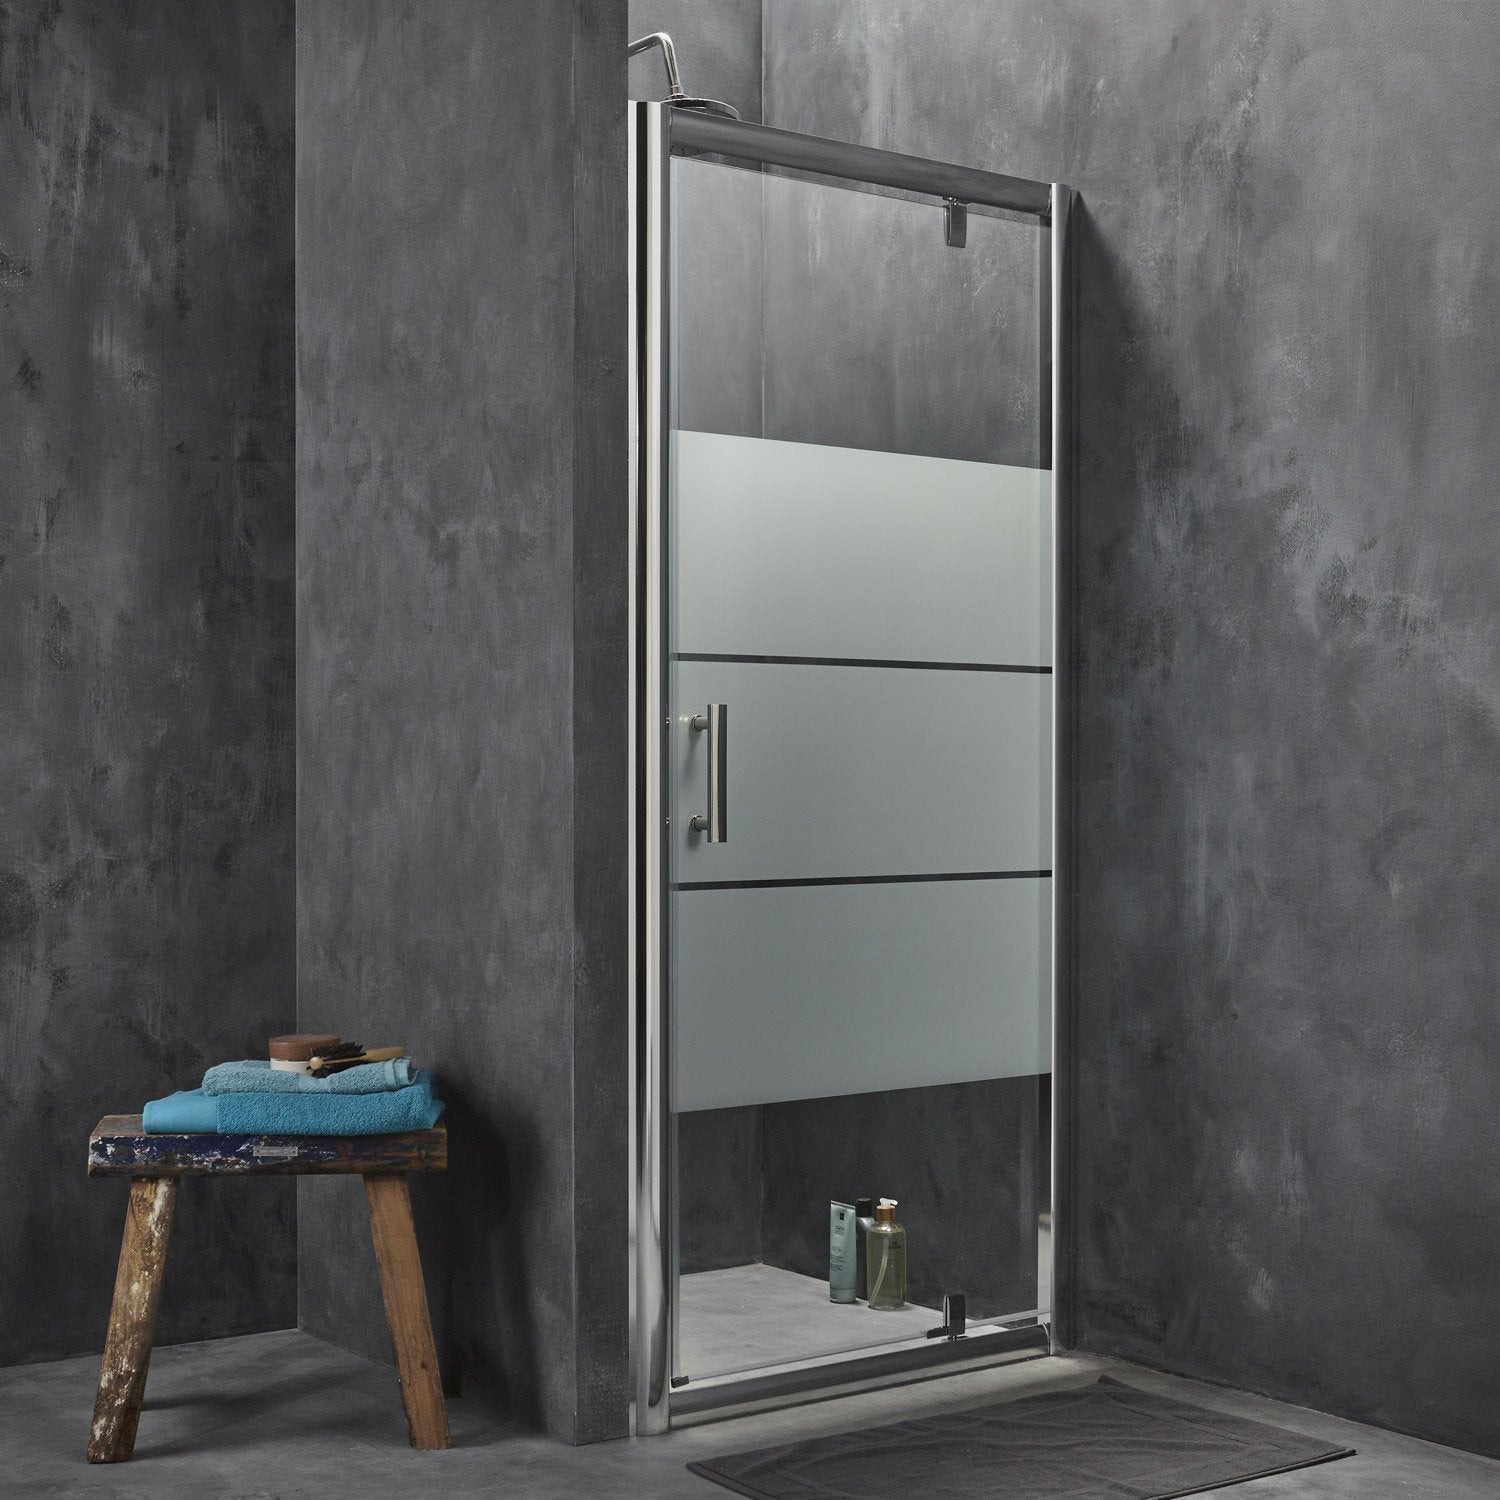 porte de douche pivotante sensea optima 2 verre de s curit s rigraphi leroy merlin. Black Bedroom Furniture Sets. Home Design Ideas